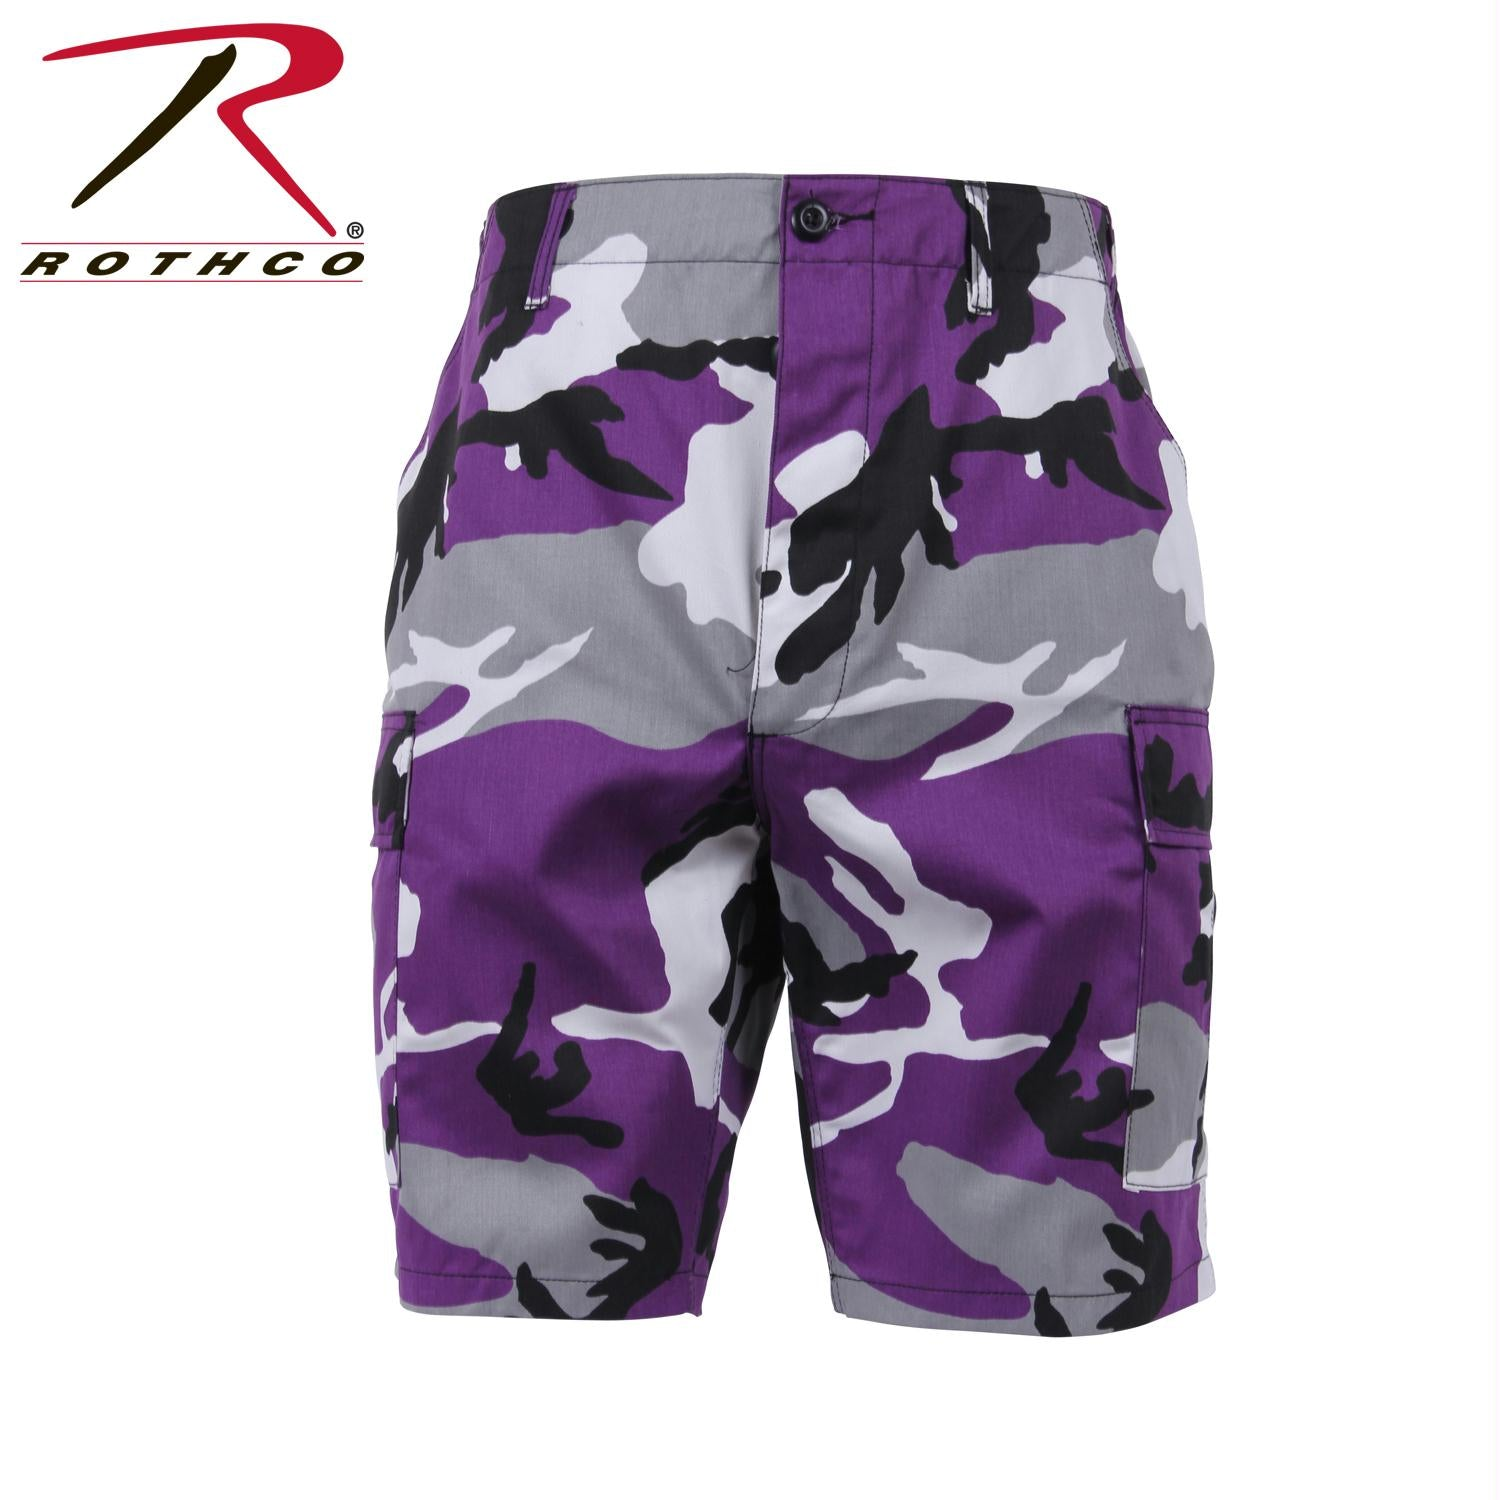 Rothco Colored Camo BDU Shorts - Ultra Violet Camo / M